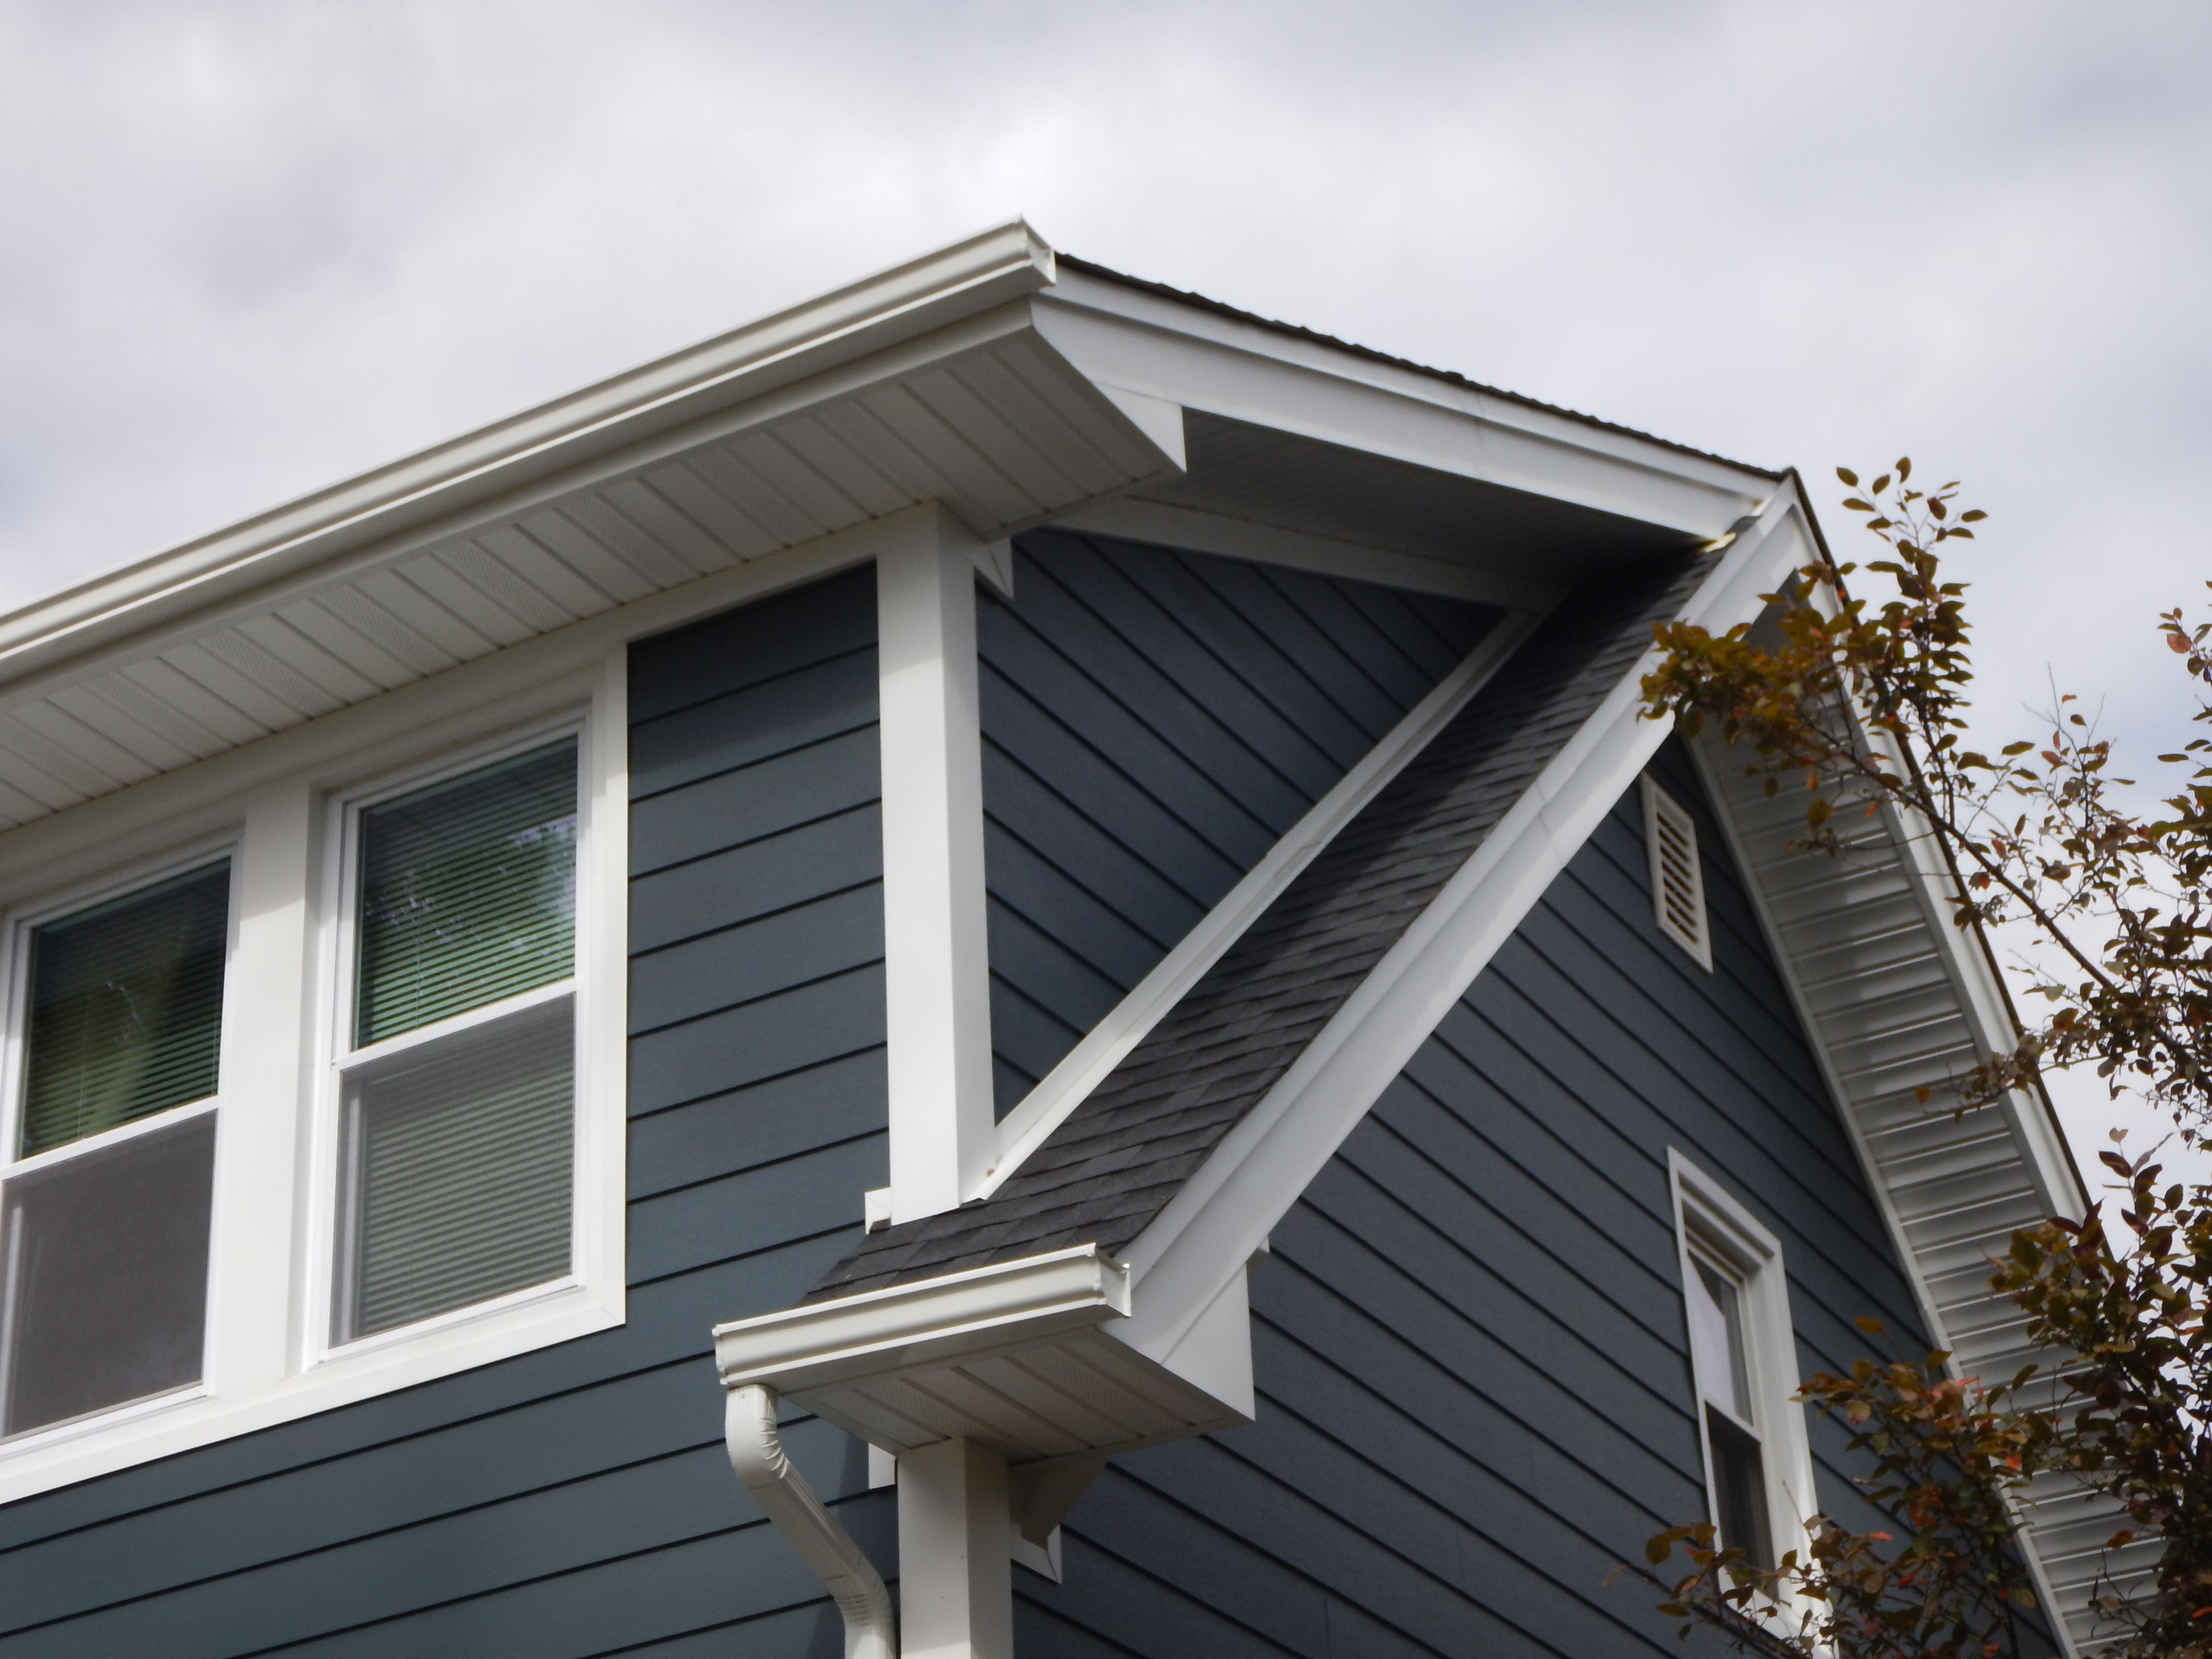 We Can Help You Come Up With Endless Azek Trim Designs For Your Bay Windows Bow Windows And Much More The Si Siding Contractors Siding Companies Siding Repair